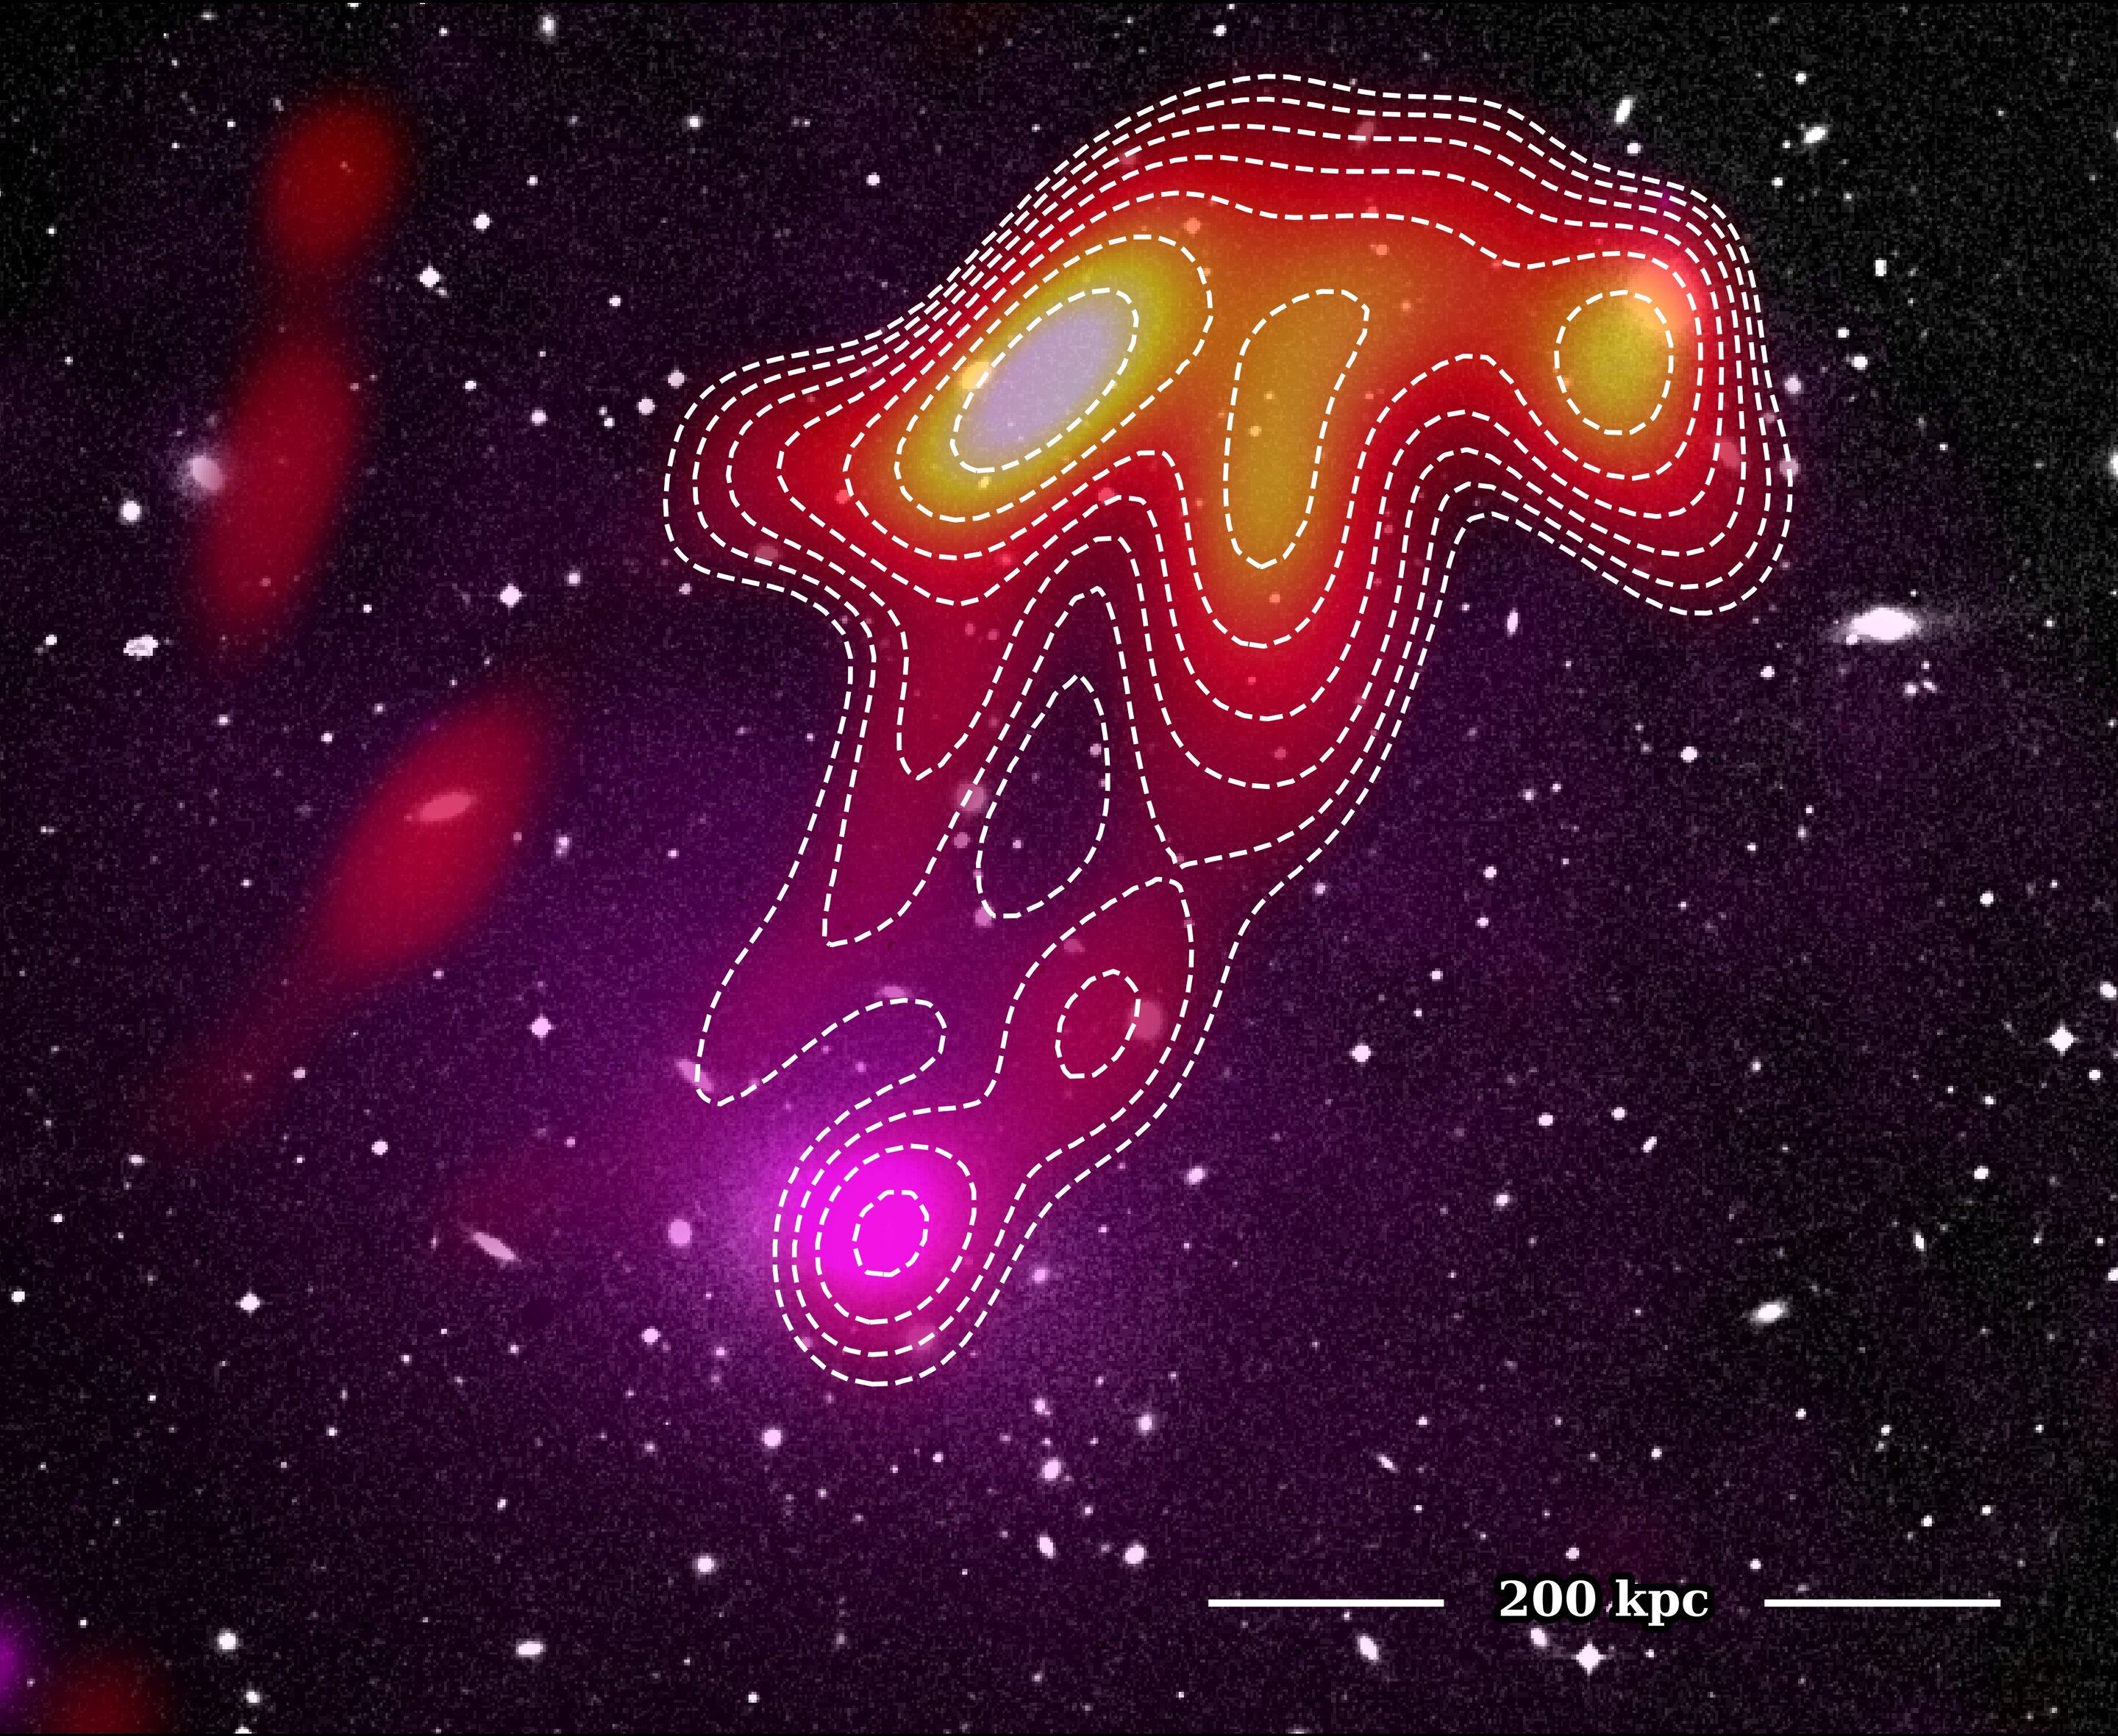 Astronomers spot a 'space jellyfish' in Abell 2877